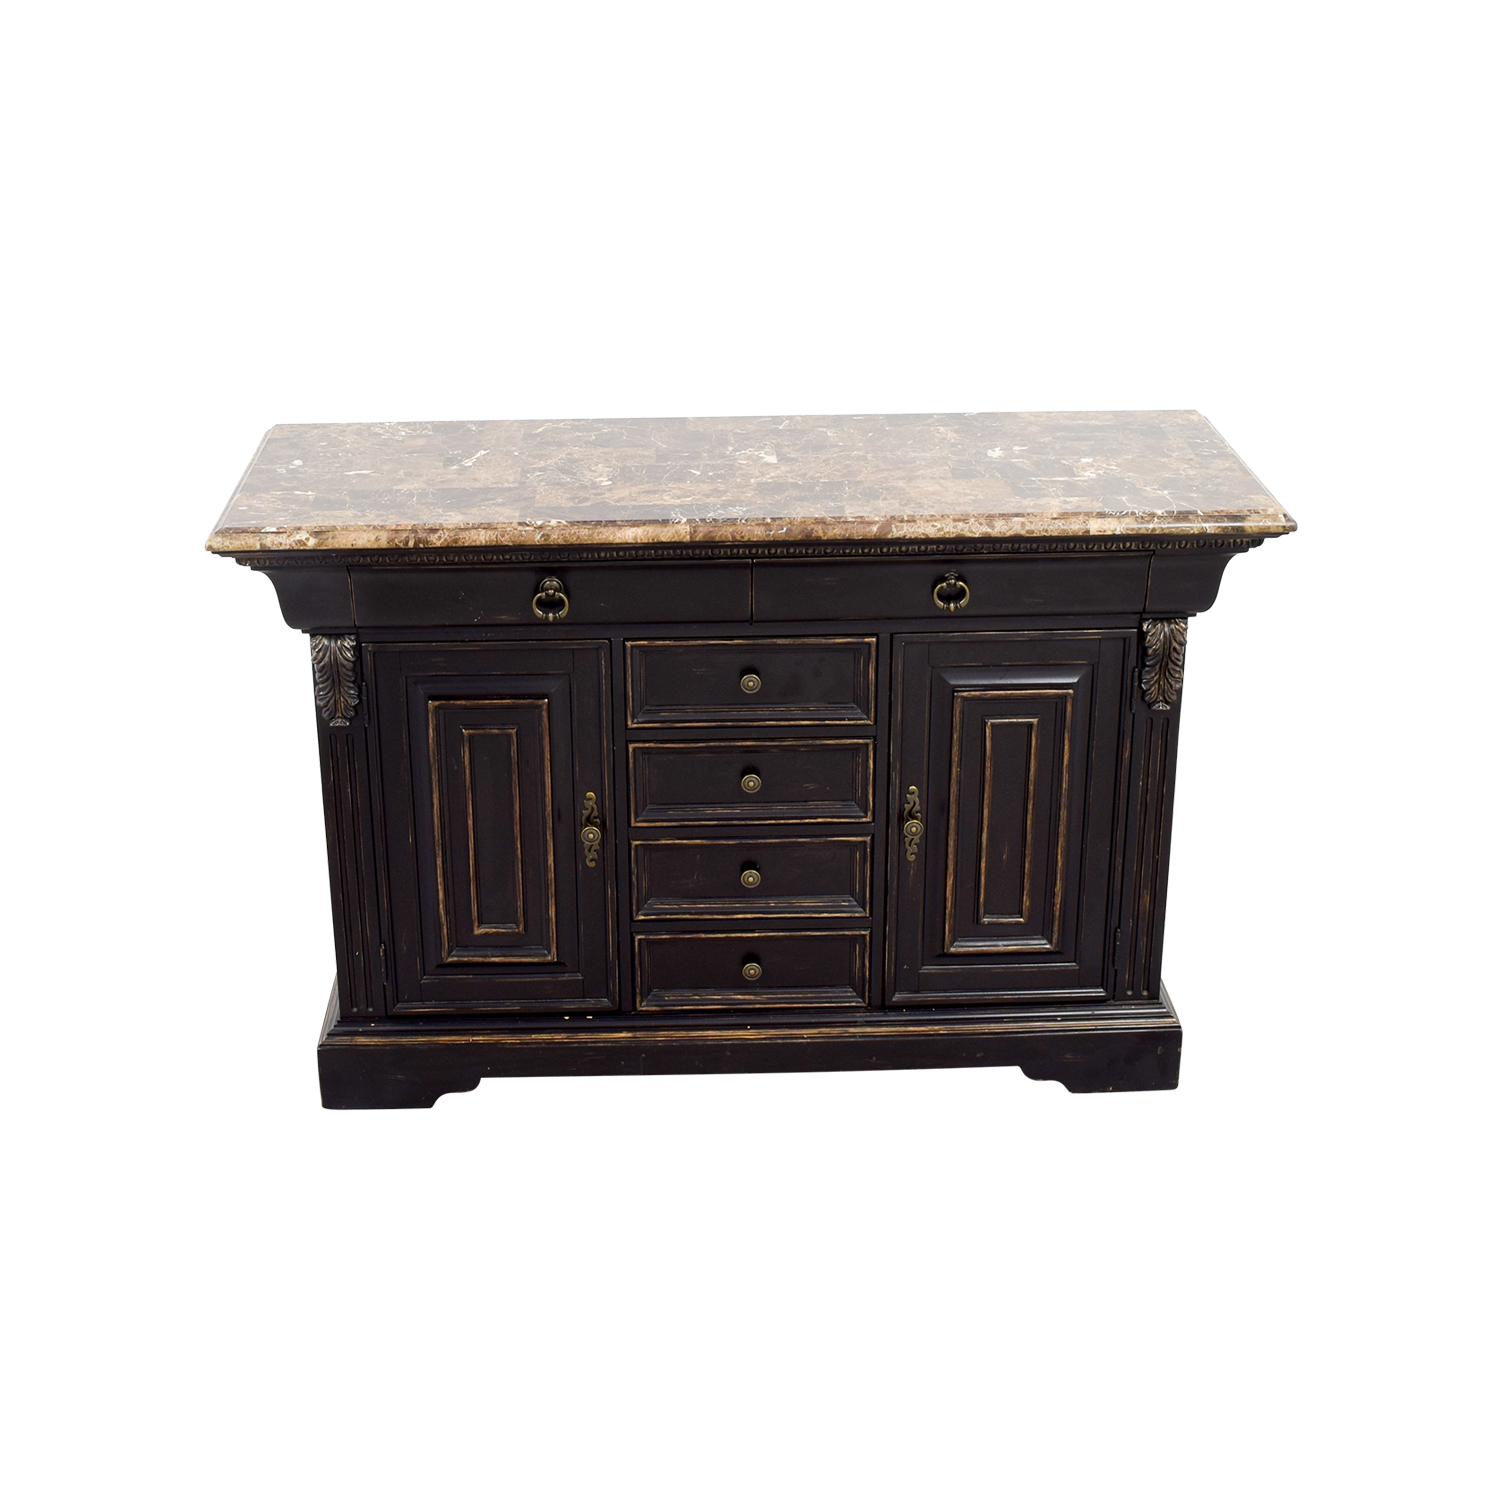 Raymour & Flanigan Raymour & Flanigan Black Sidebar with Marble Top Black/ Marble